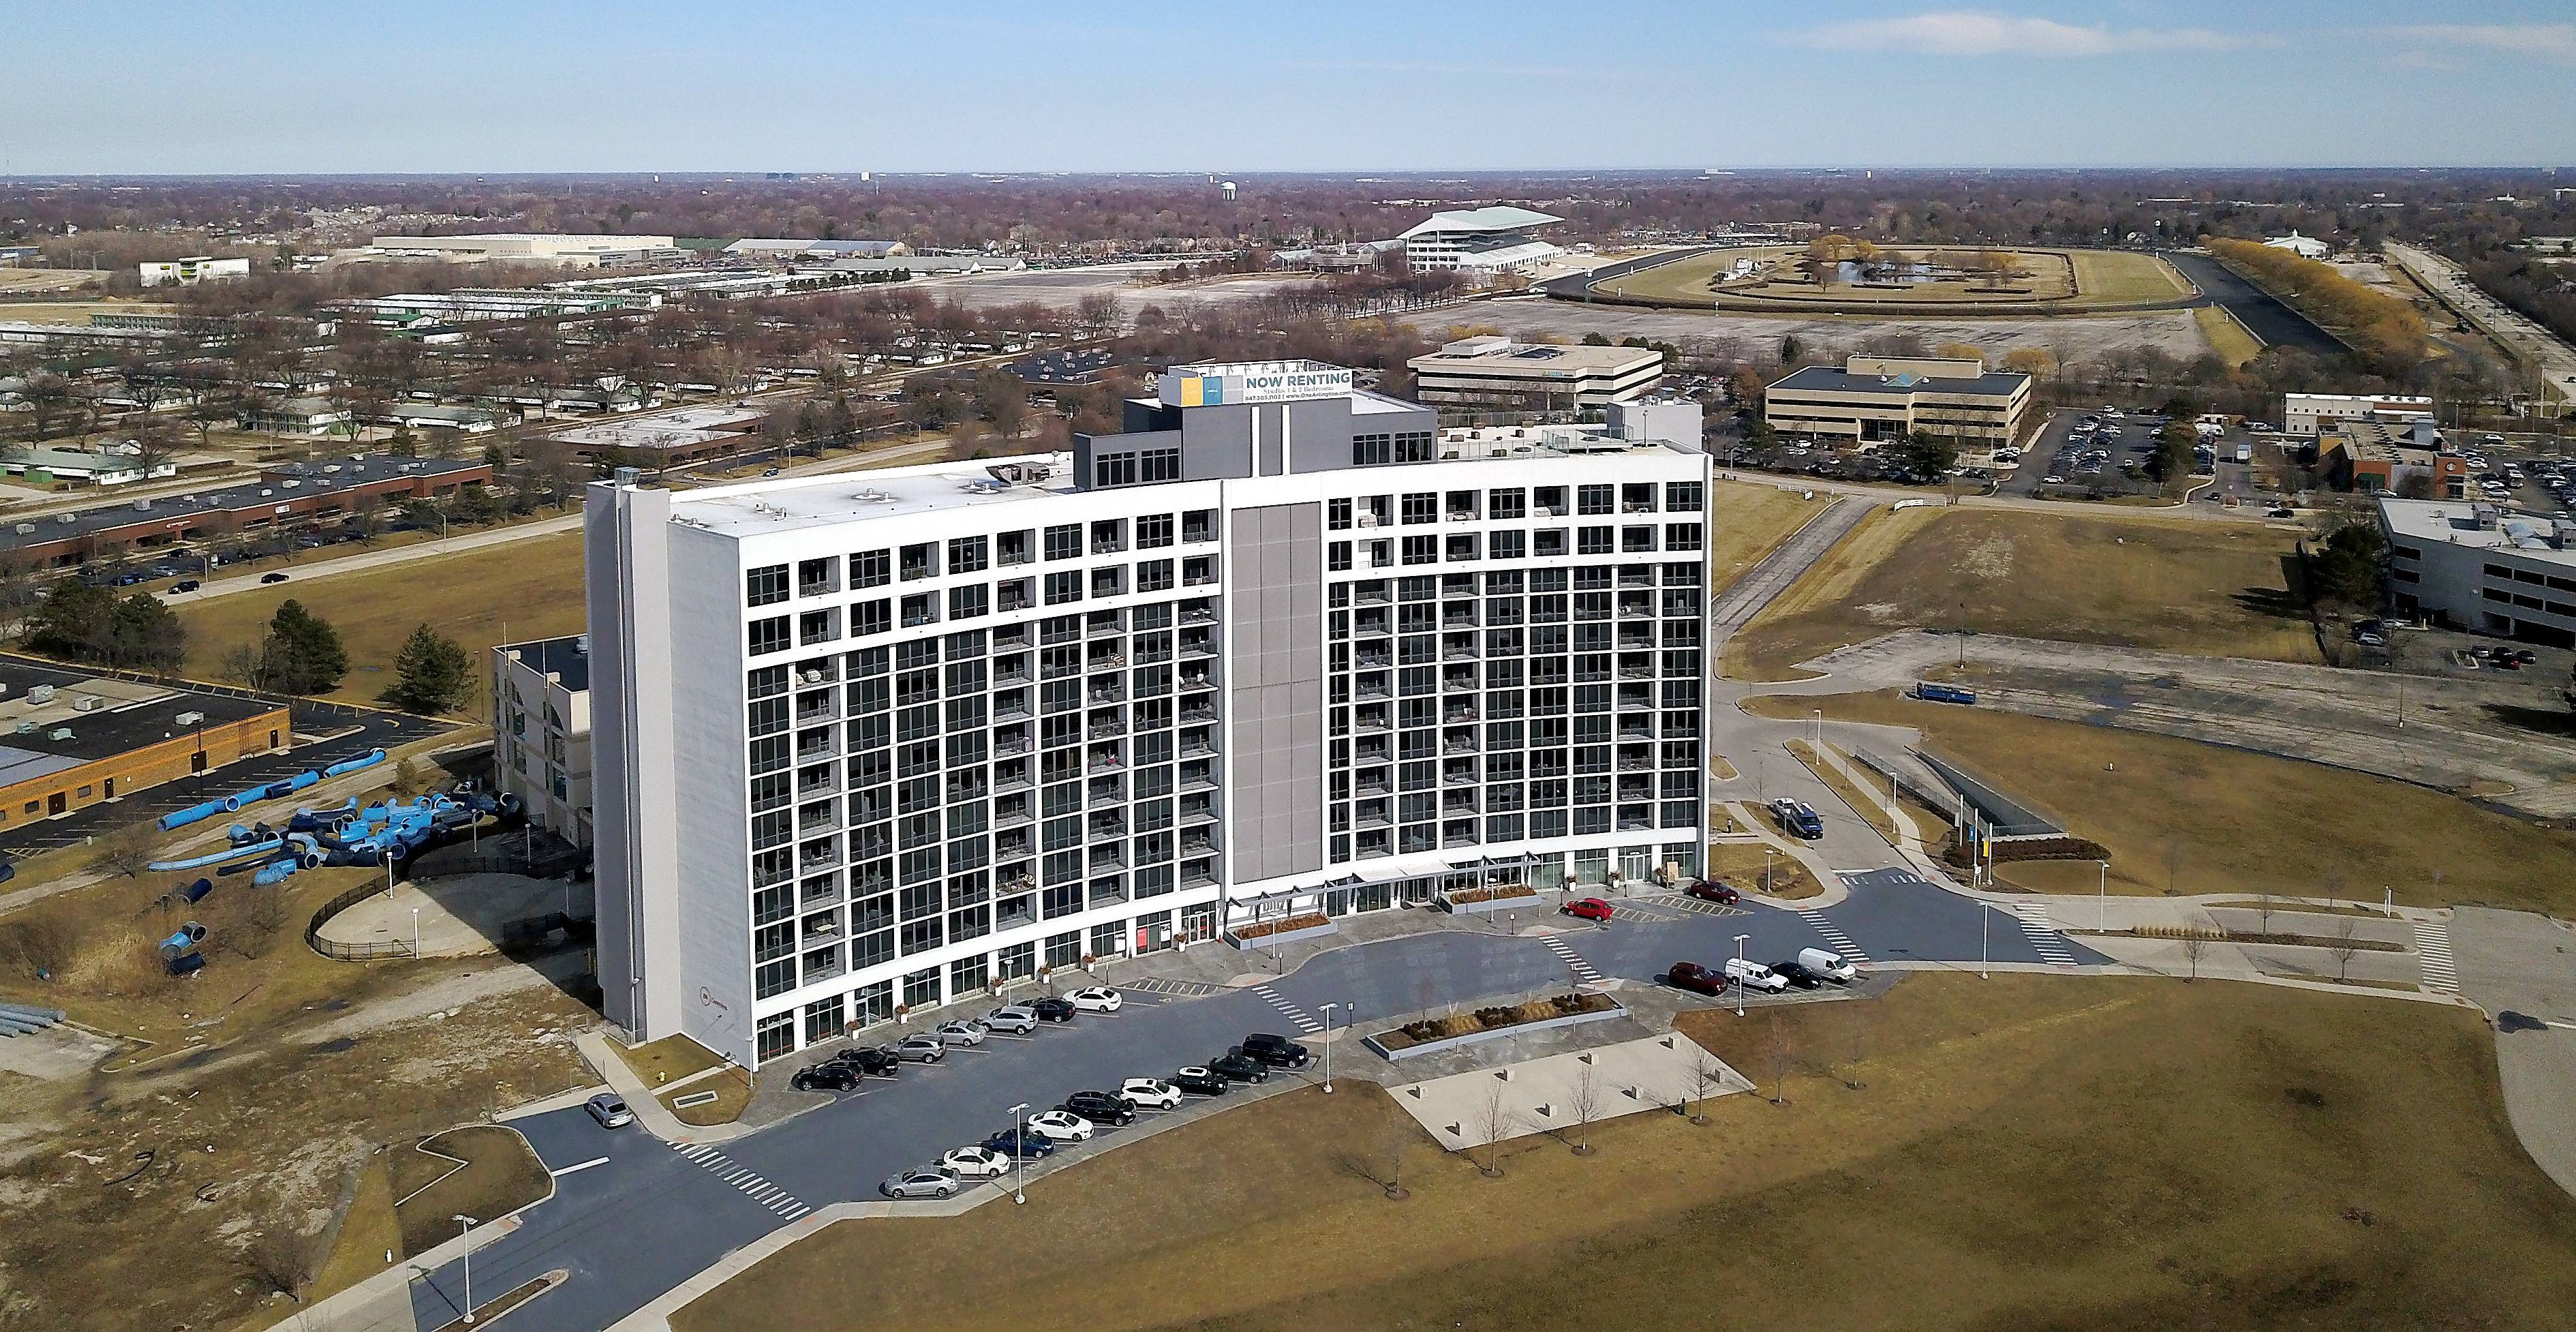 The Arlington Downs development, anchored by the One Arlington residential tower, has been slow to develop, prompting developers to revise their plans to try to get the rest of the project off the ground.